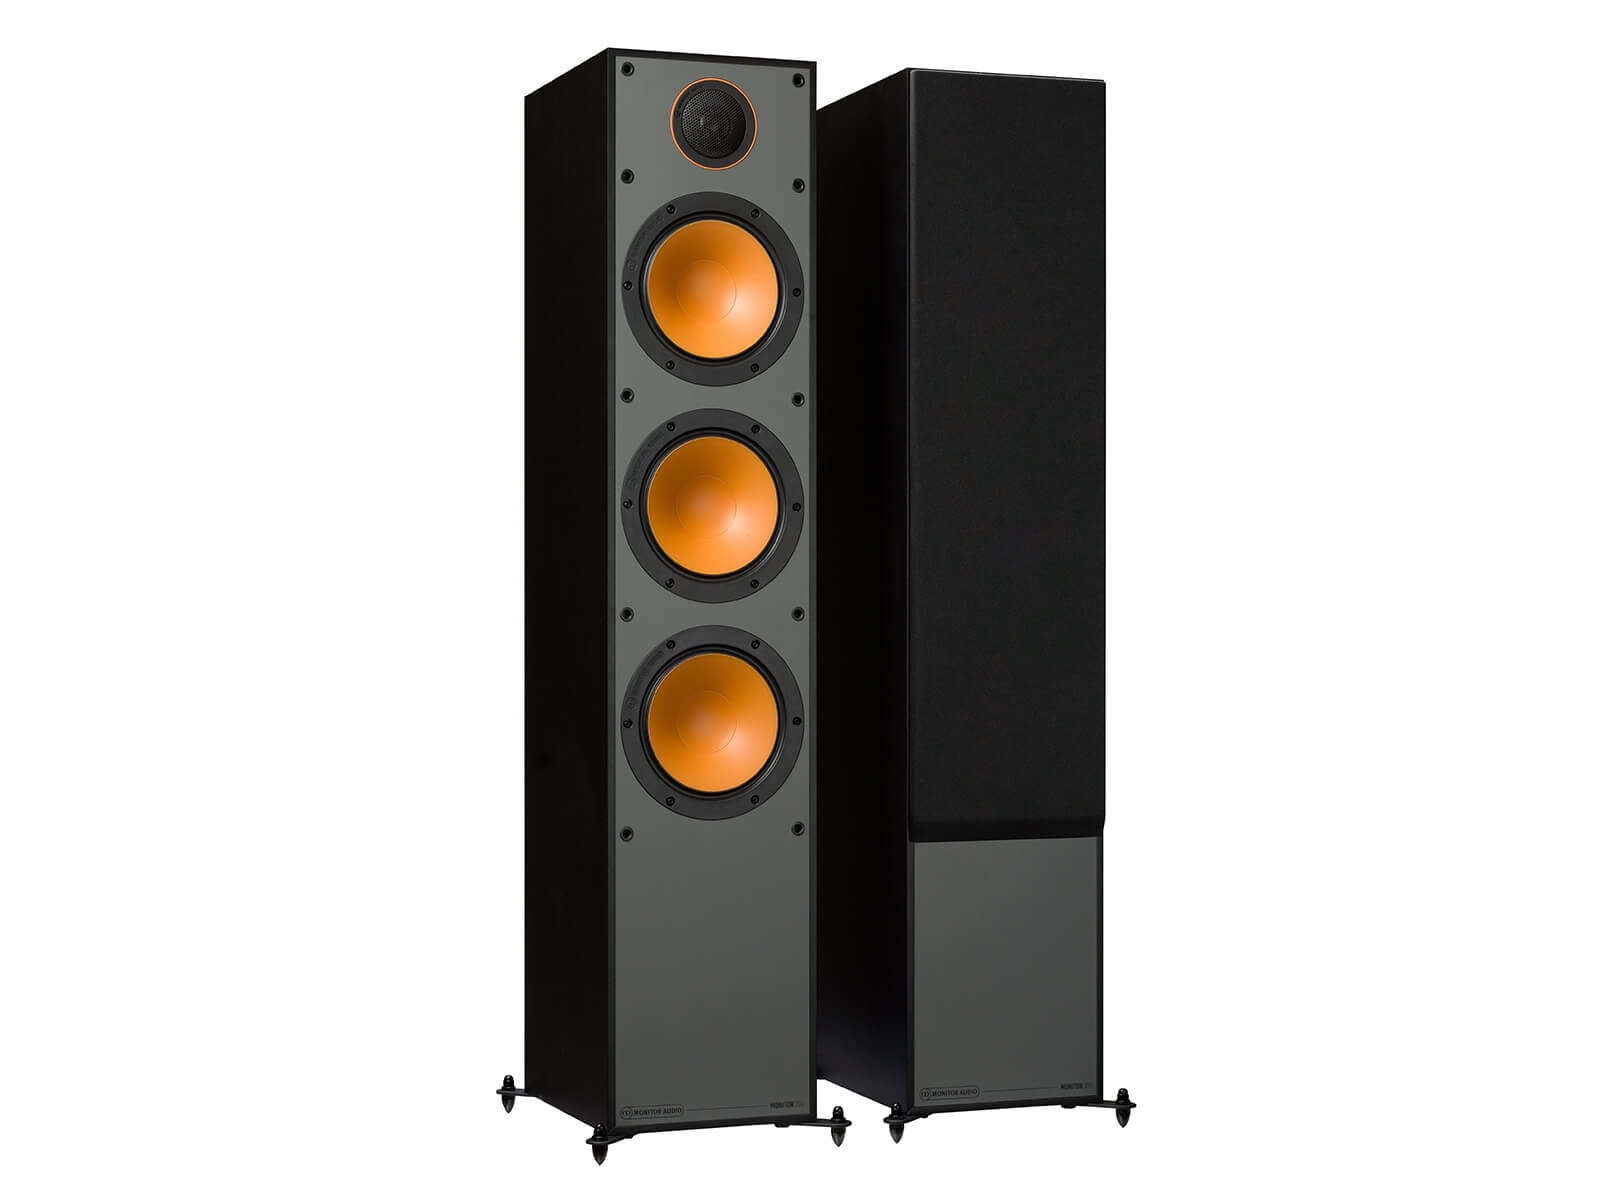 Monitor 300, floorstanding speakers, with and without grille in a black finish.